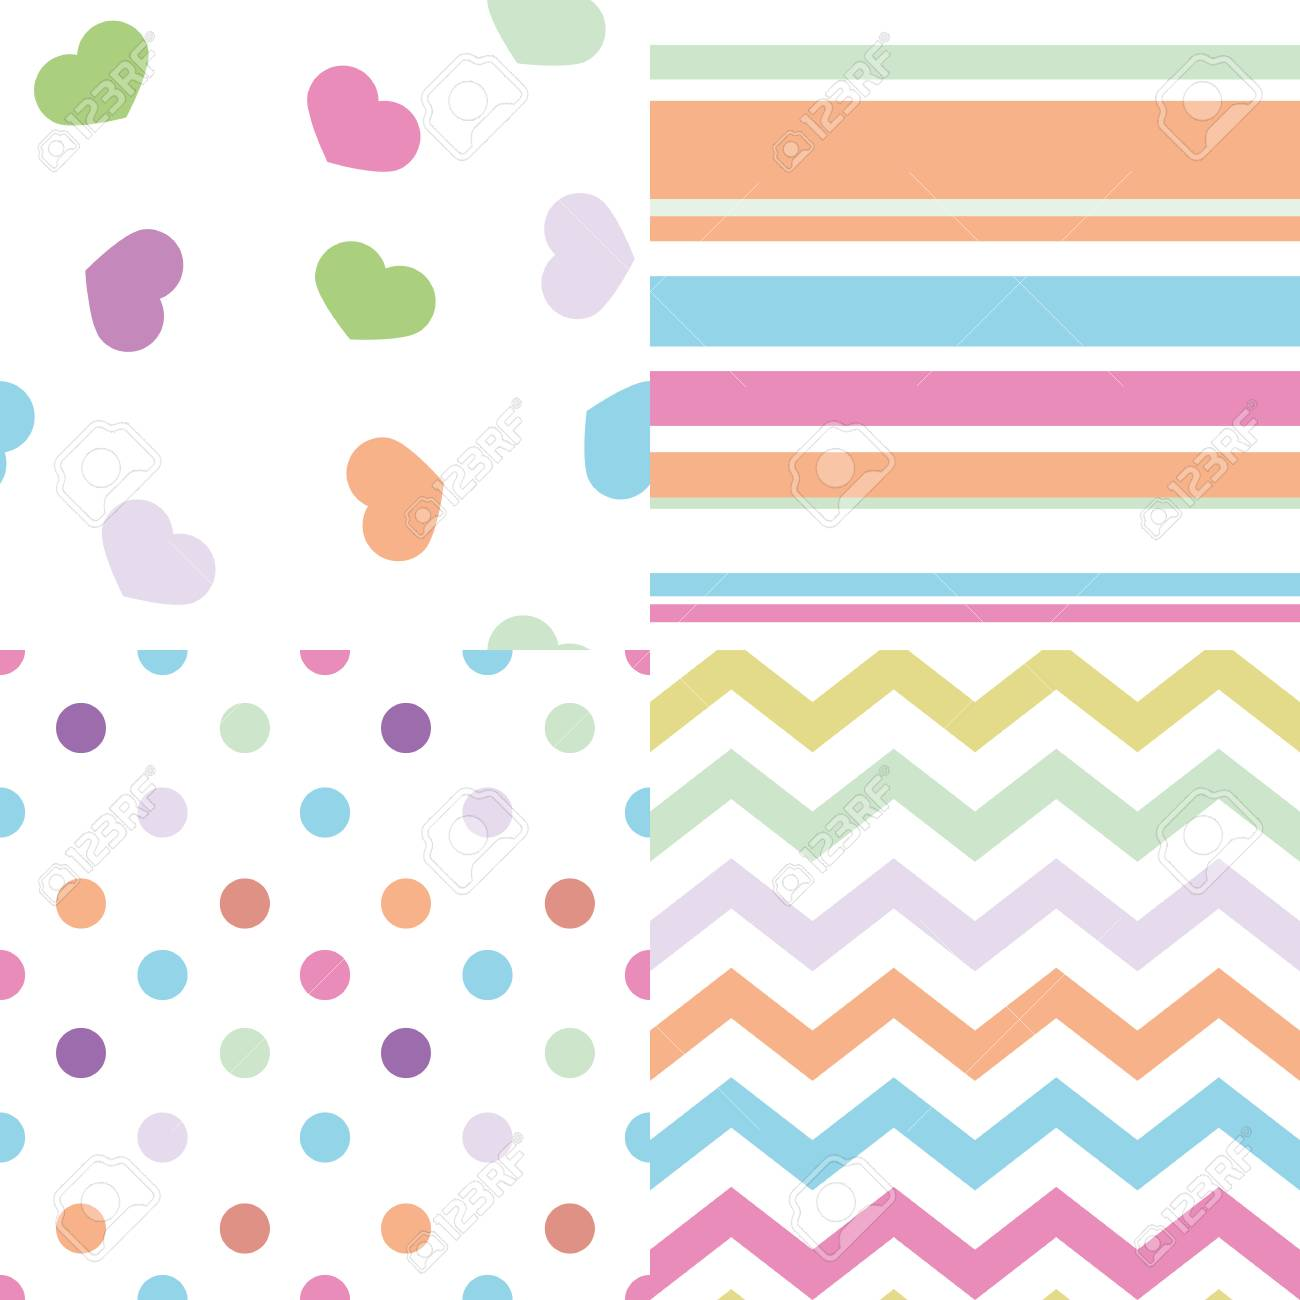 e1a995d36 set of simple baby seamless patterns